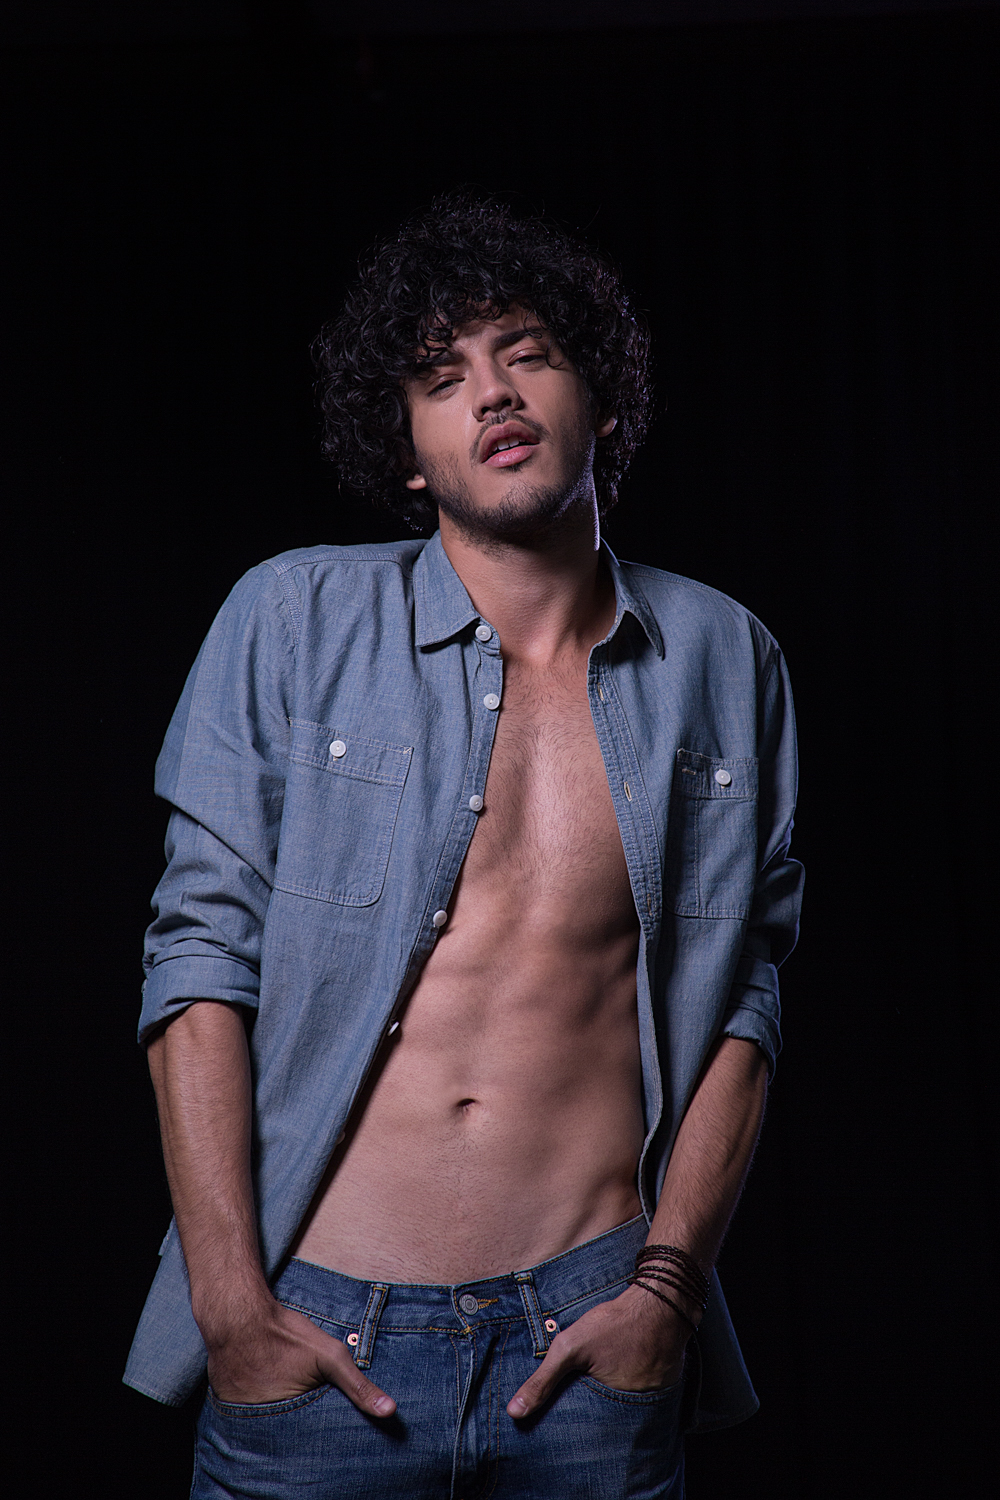 "Presenting for the very first time Photographer René de la Cruz from Chile with his project entitled ""Ensayo 36: Caio"". Starring Brazilian new face Caio Botelho from New Models (Chile) and Joy Models (Brazil). It's a good job meeting the objectives achieved, a beautiful potential model."